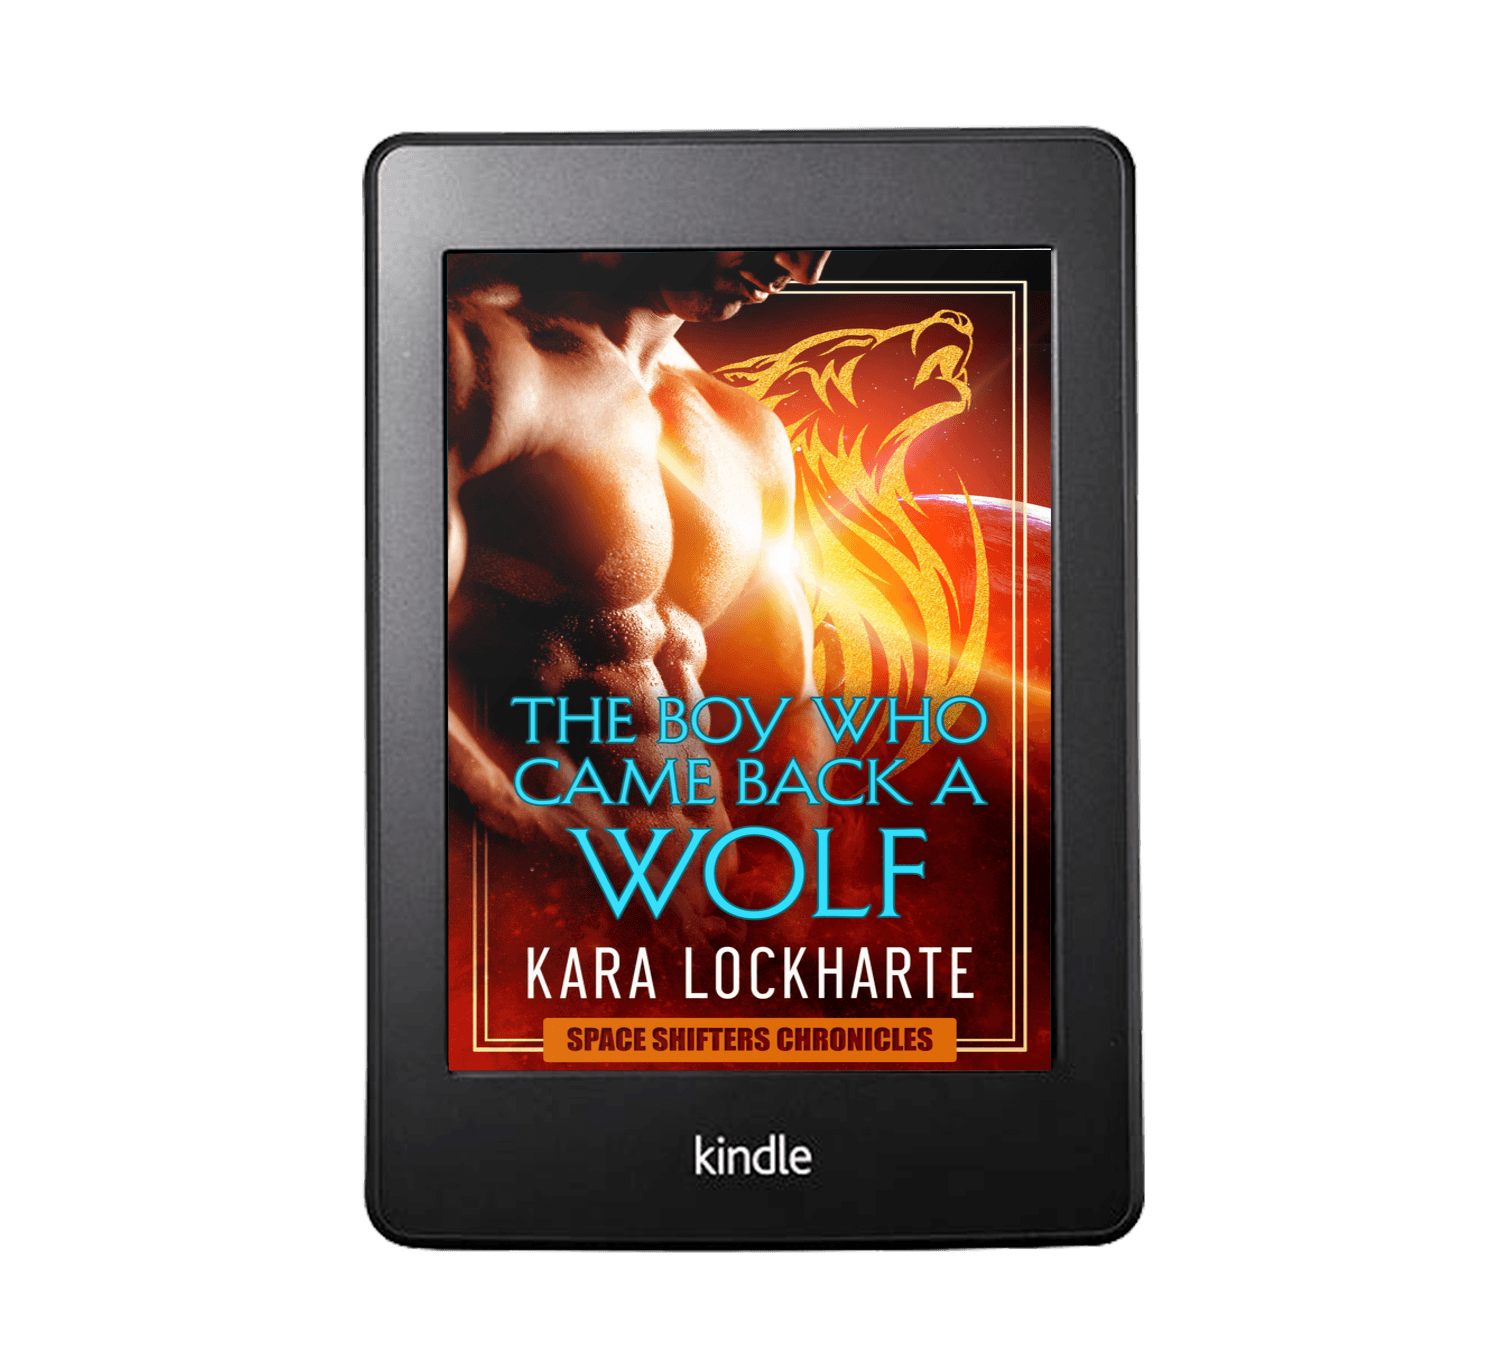 The Boy Who Came Back a Wolf